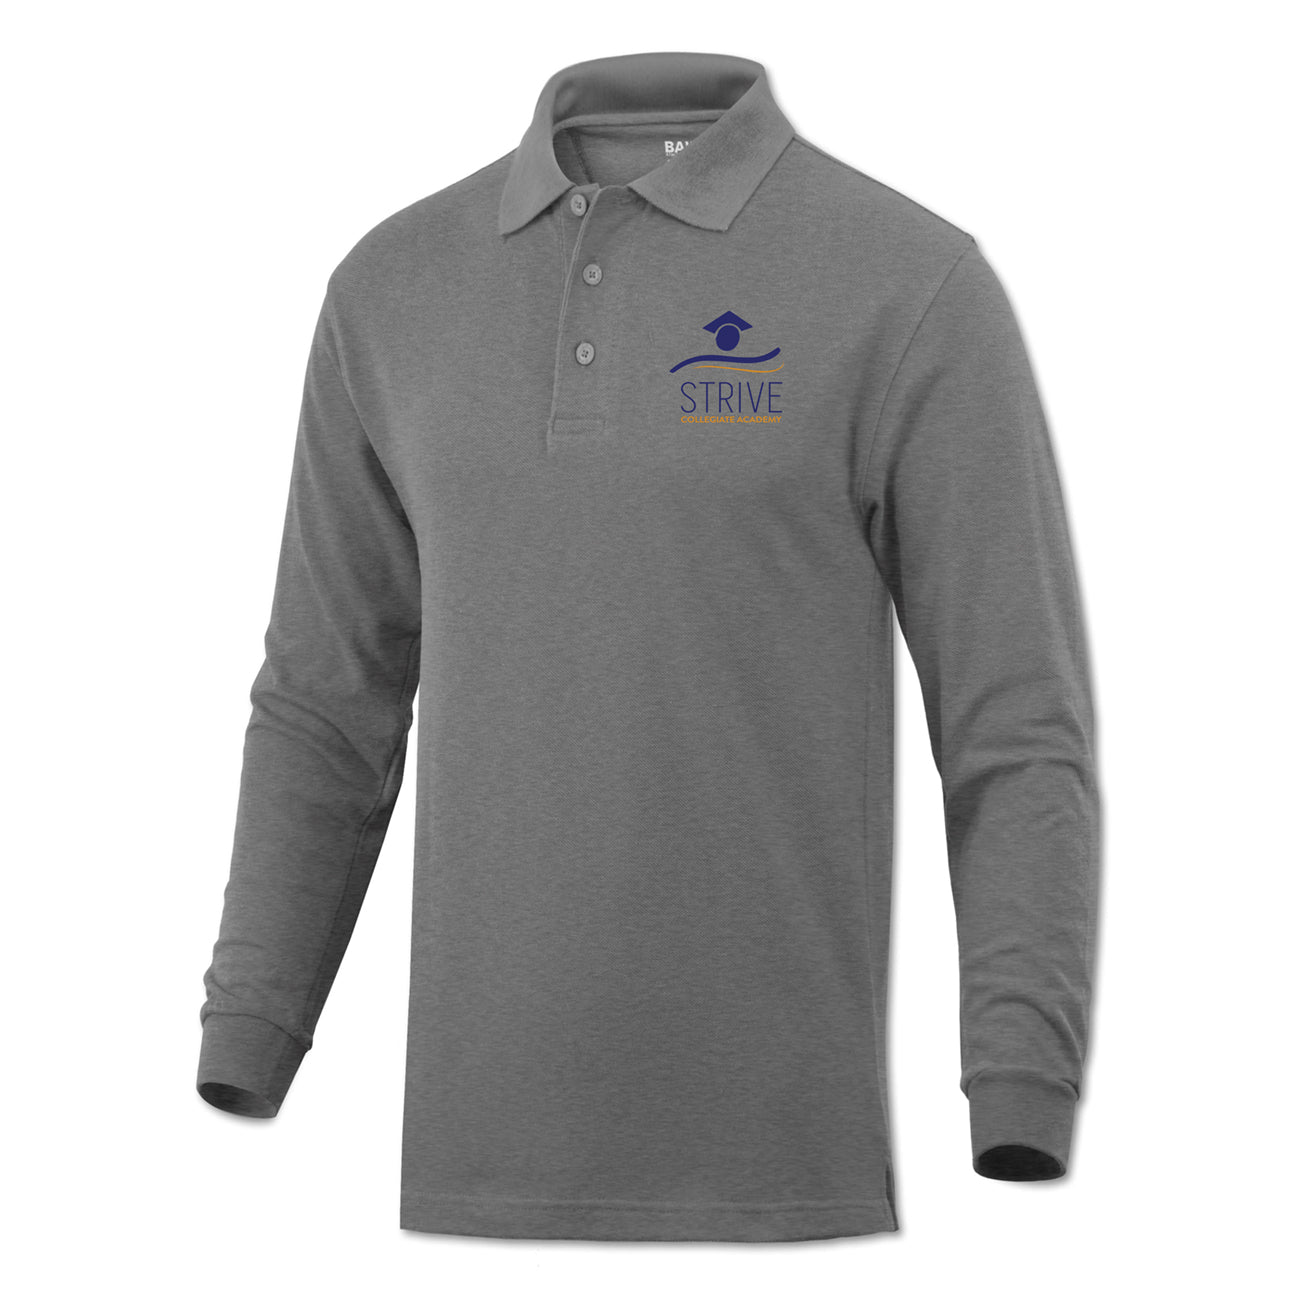 6th Grade Polo (long sleeve) - Grey